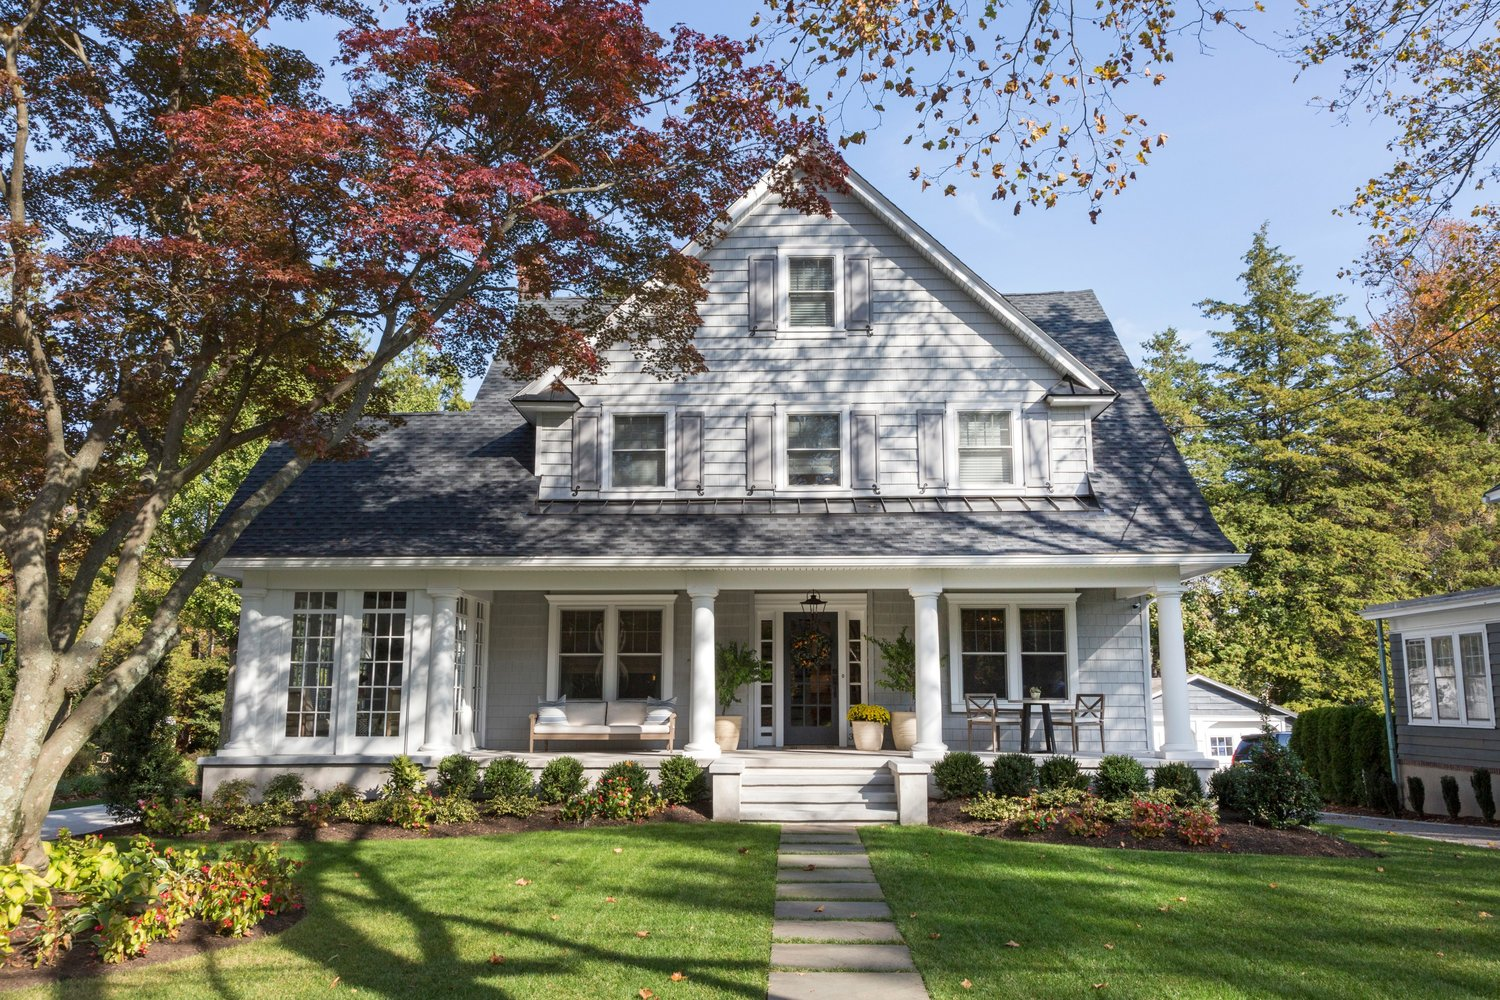 Renovated exterior of haddonfield project